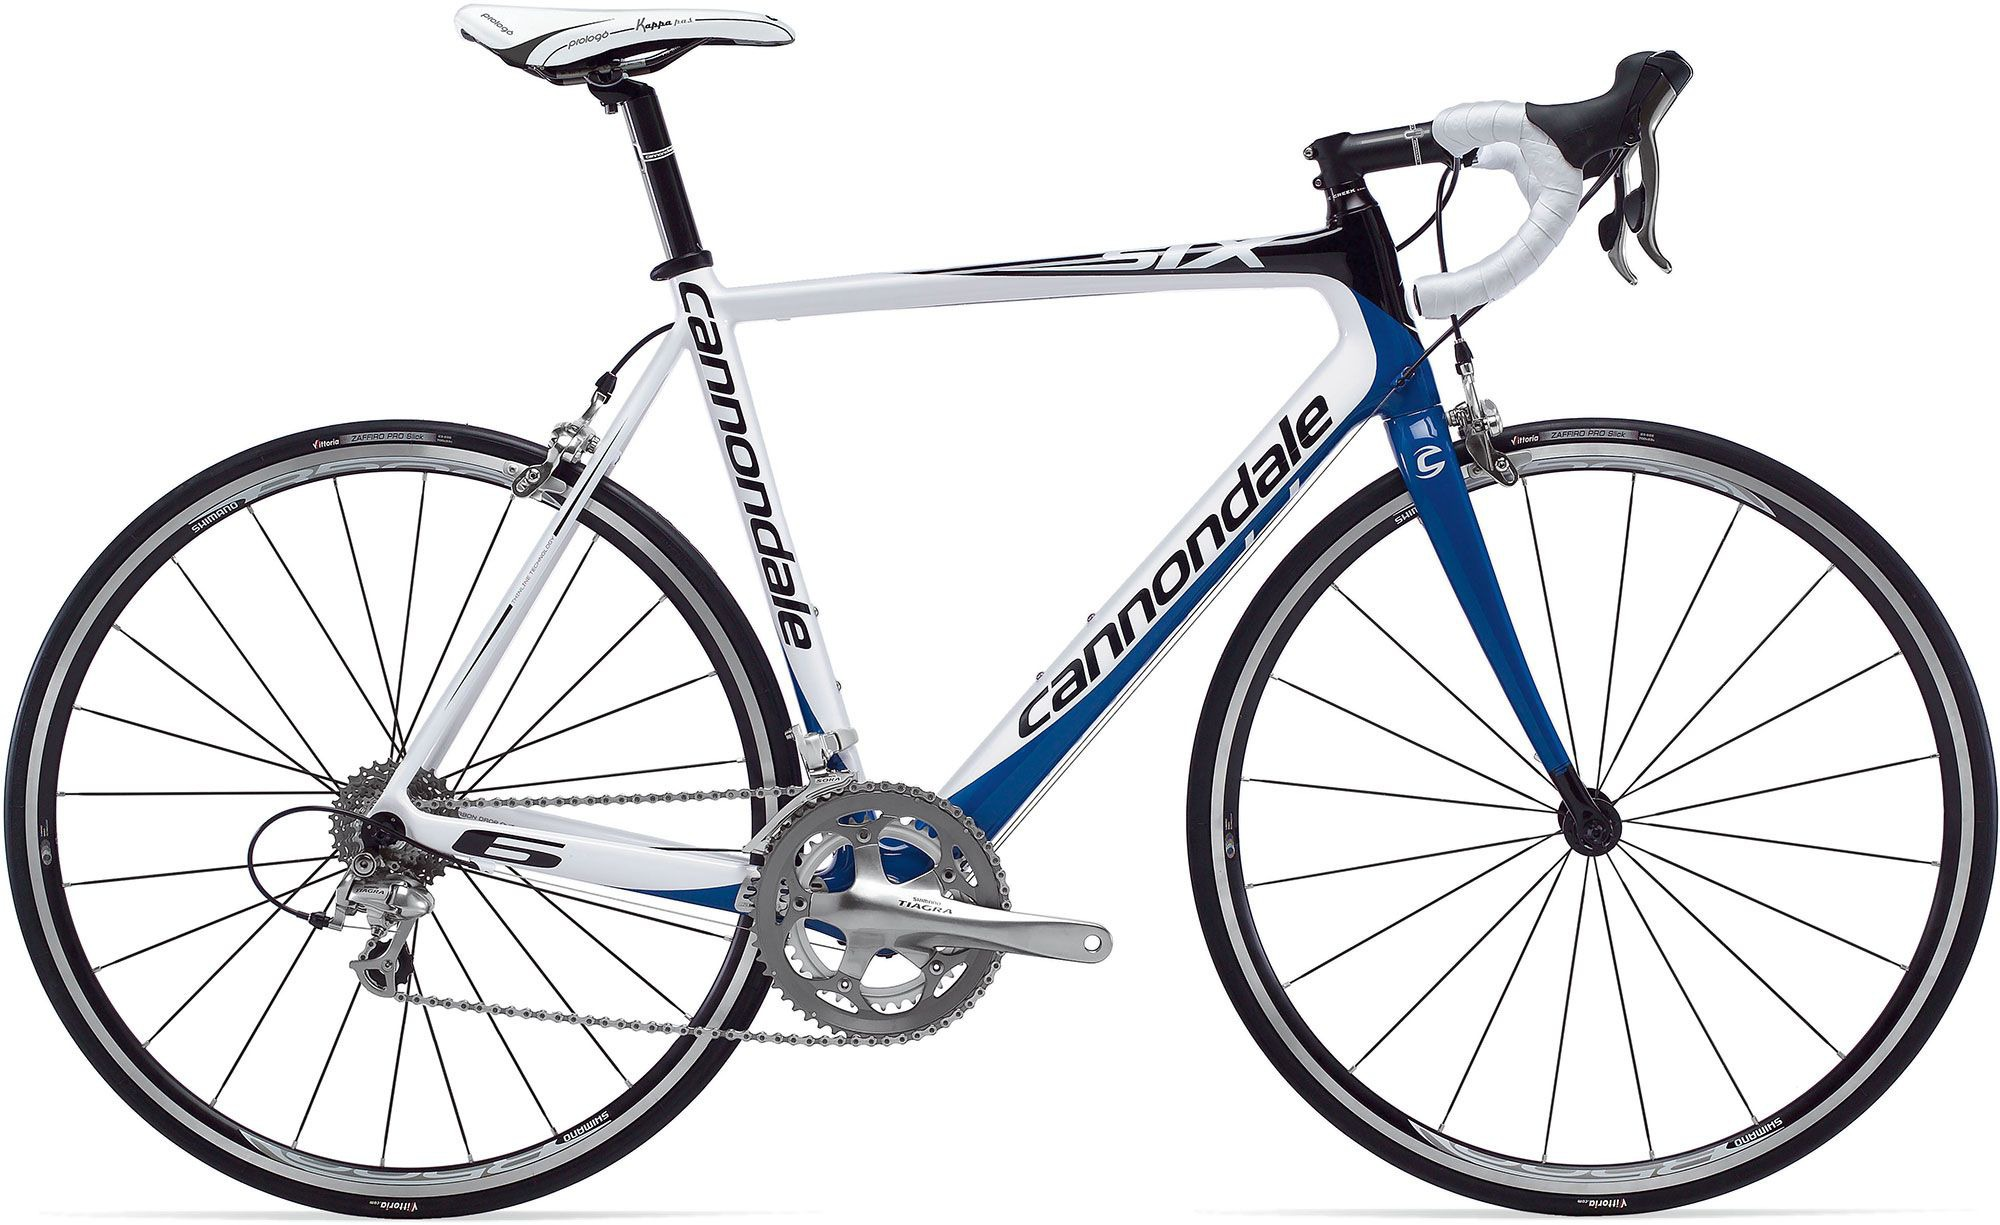 43db7229494 Cannondale Six Carbon 6 - Ridgewood Cycle Shop 35 North Broad Street ...